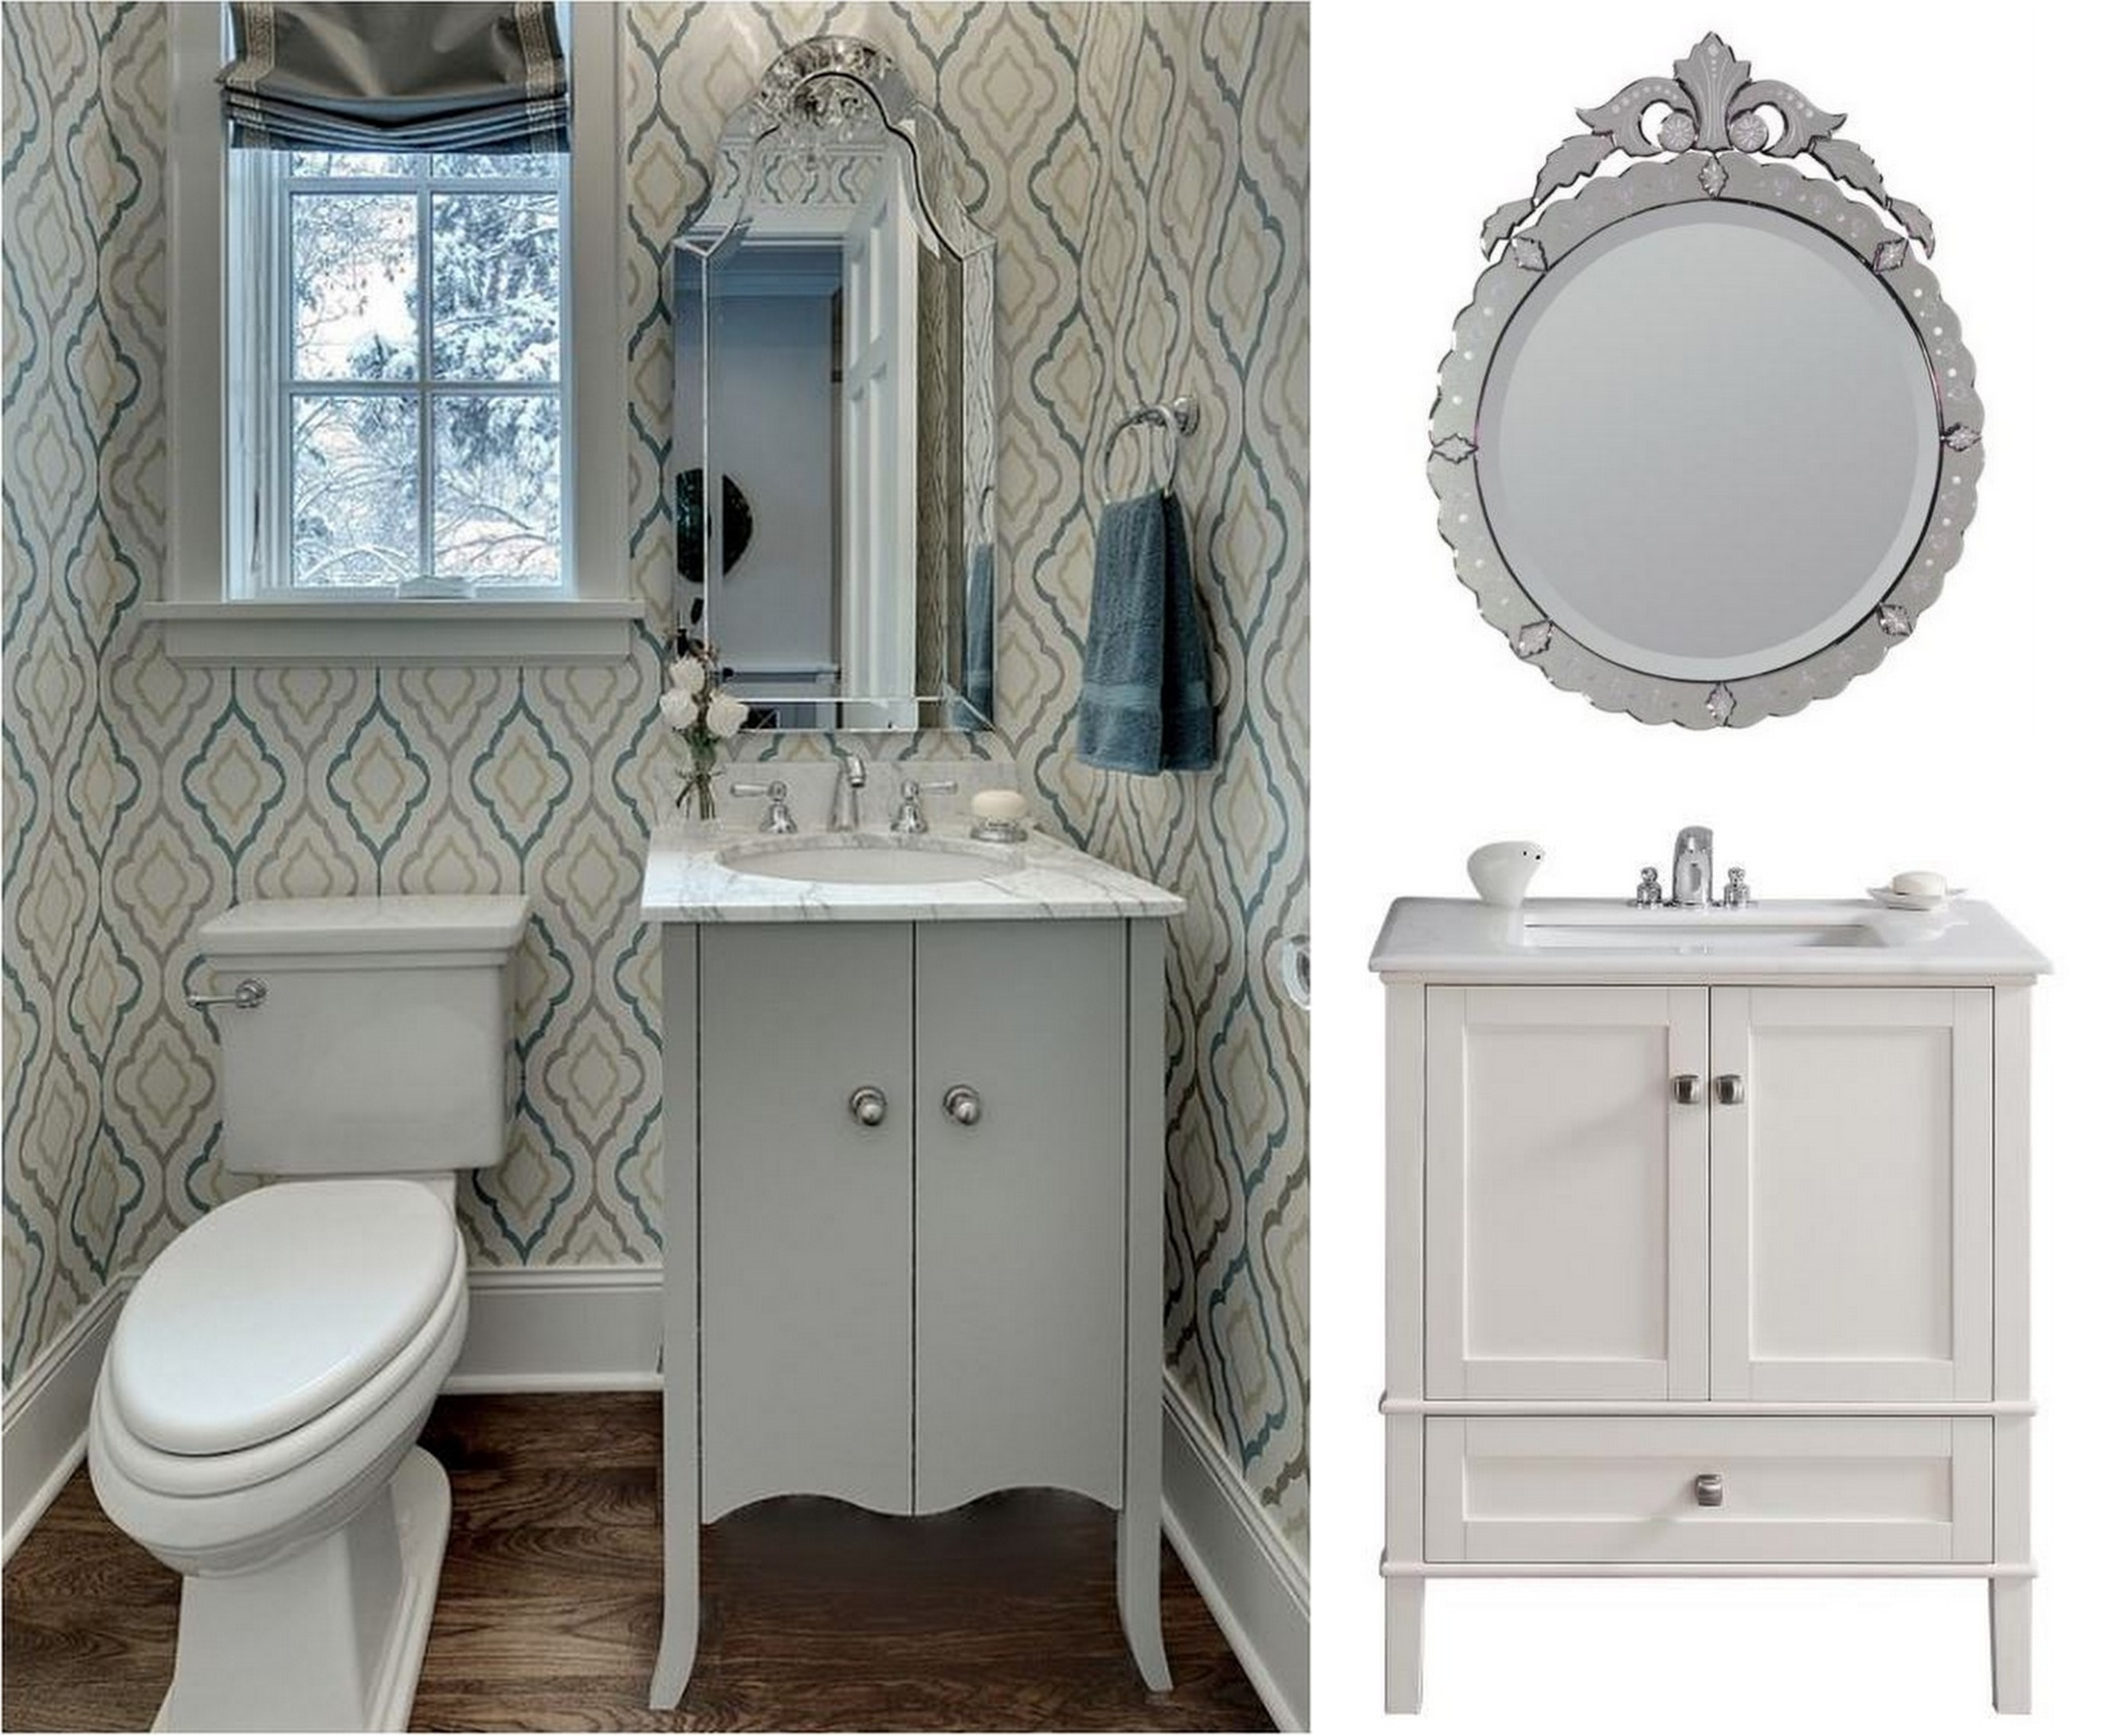 How To Decorate A Bathroom With Appeal Home Decorating Blog With Venetian Bathroom Mirror (Image 9 of 15)